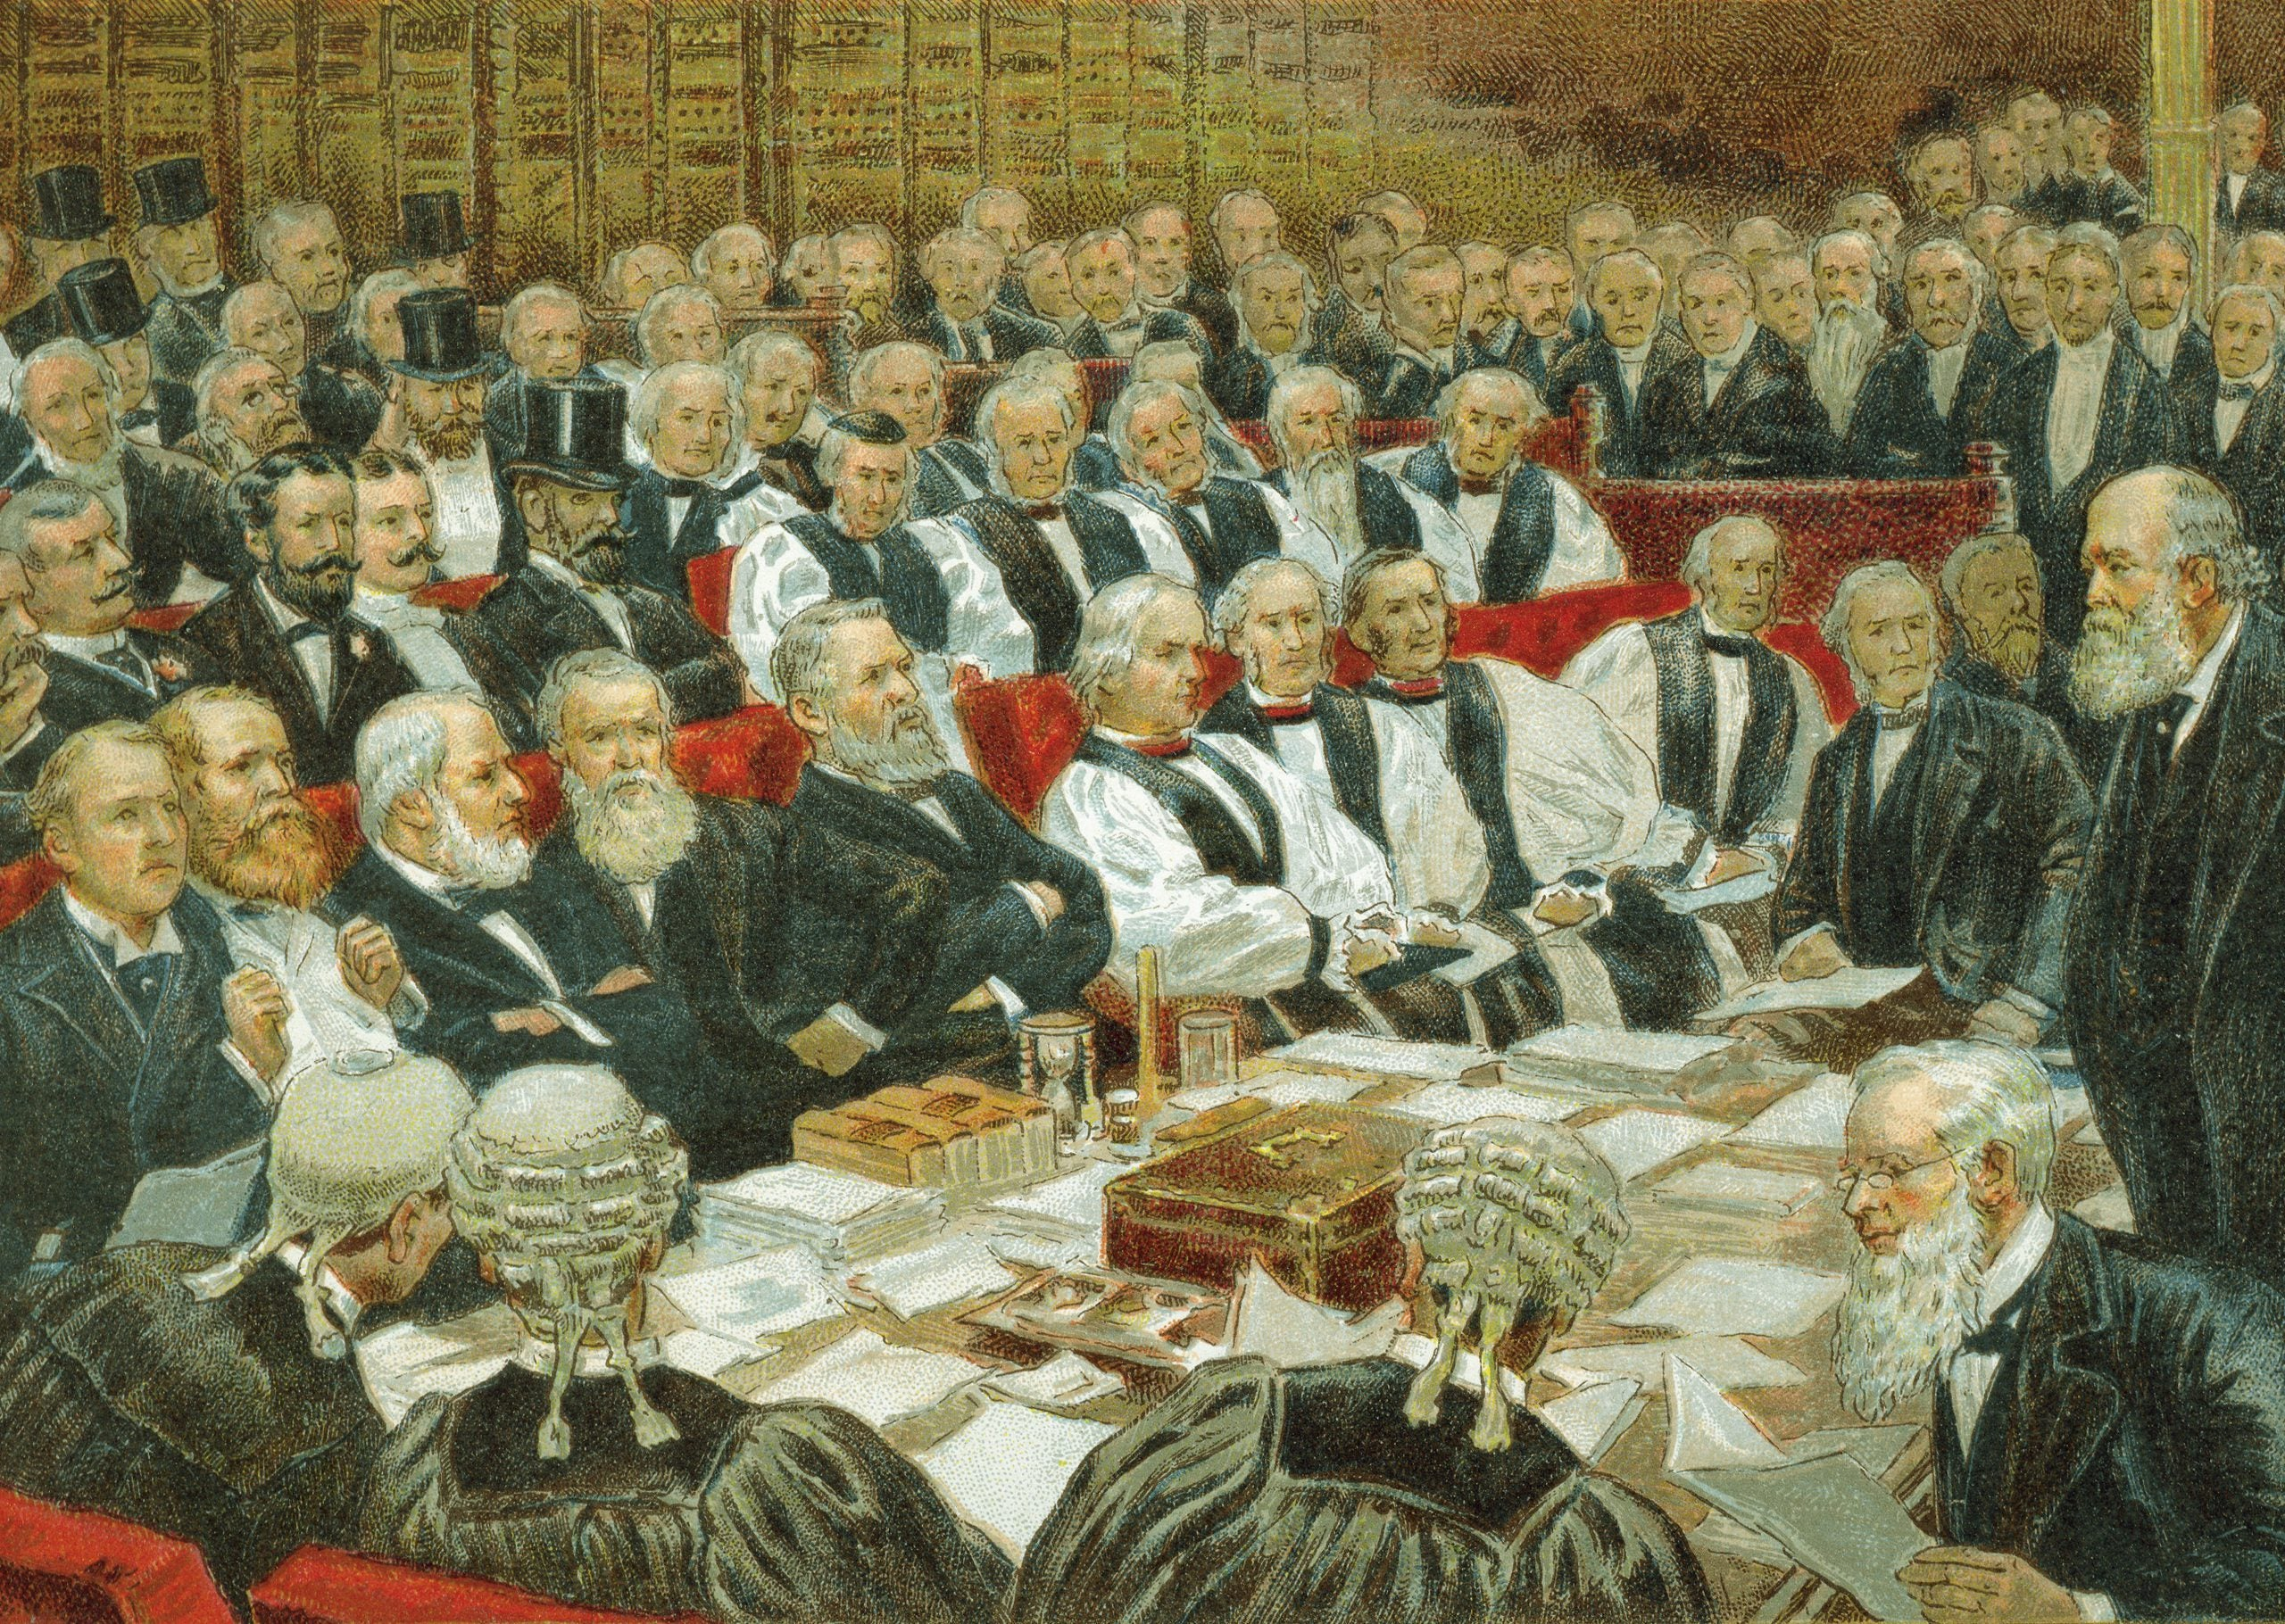 Should the House of Lords be reformed or abolished?